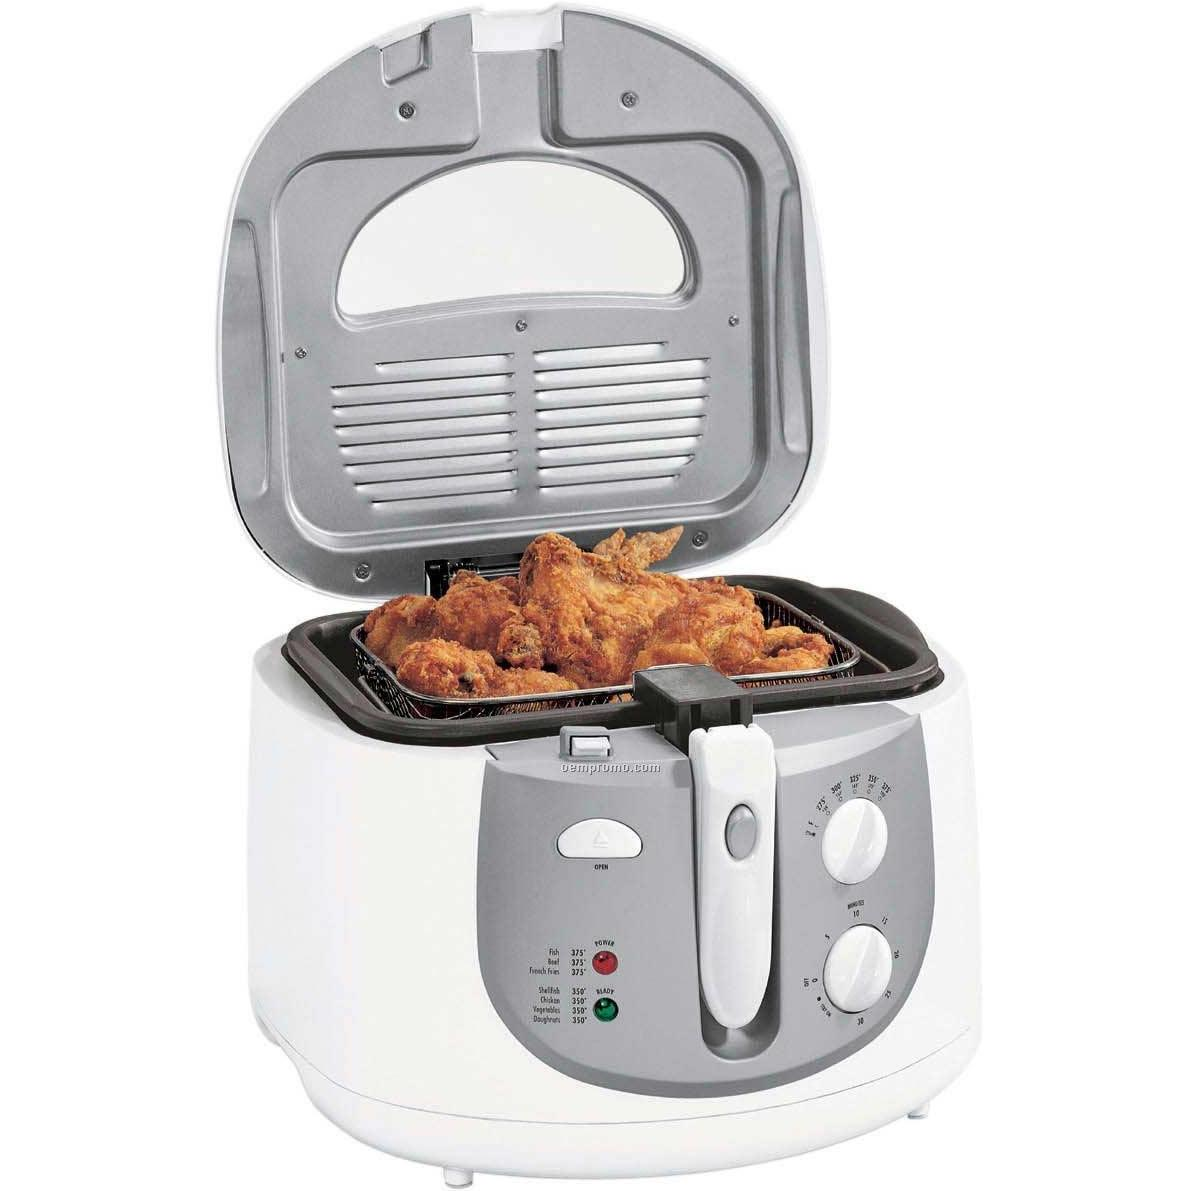 Hamilton Beach 8-cup Cool Touch Deep Fryer